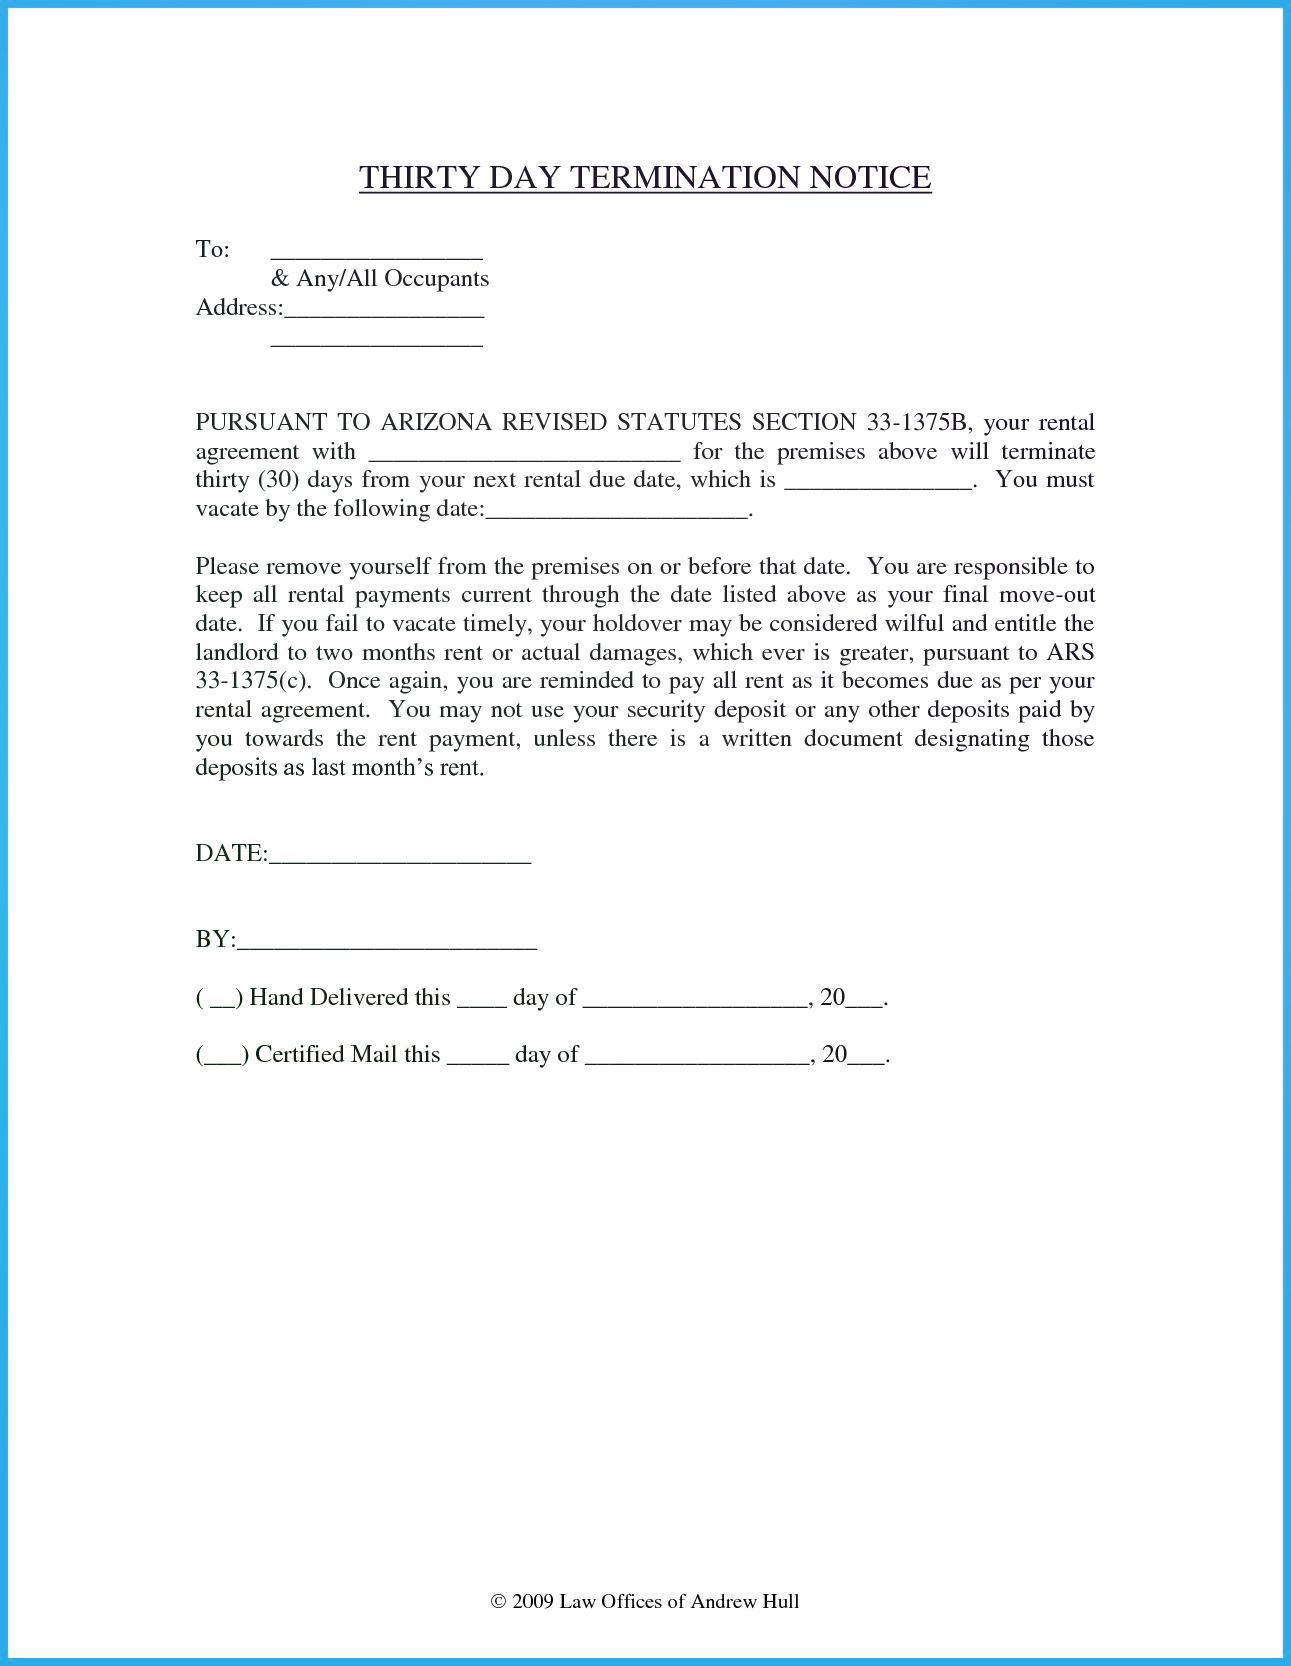 freeform 30 day notice to vacate  7 day termination notice | Being a landlord, Free ...